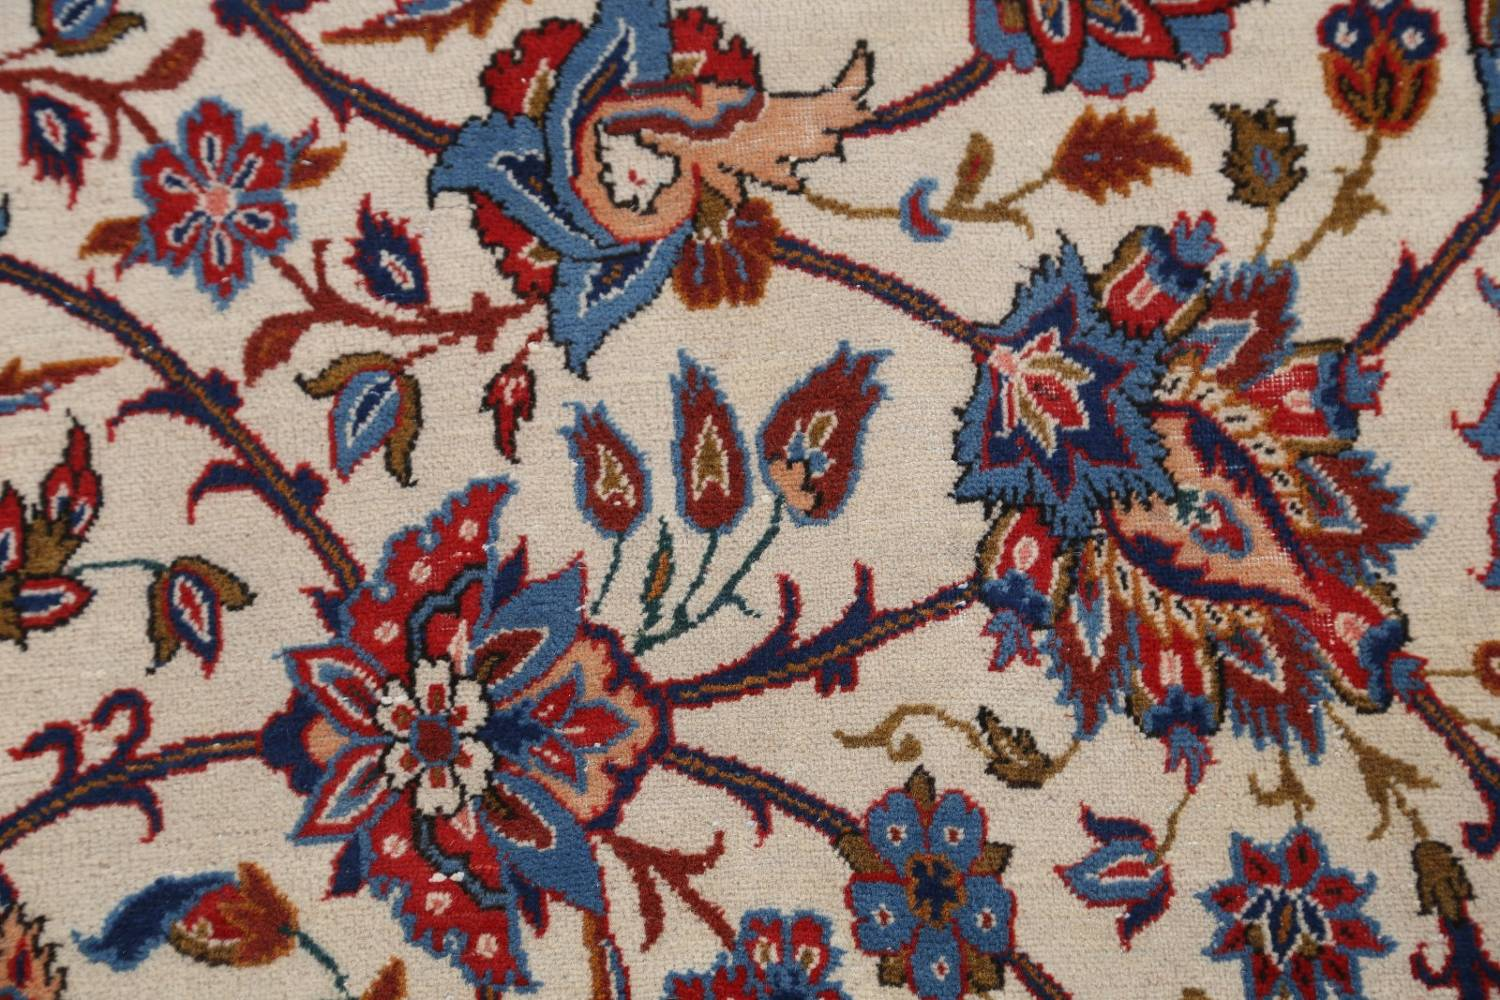 Antique Floral 10x16 Isfahan Persian Area Rug image 10